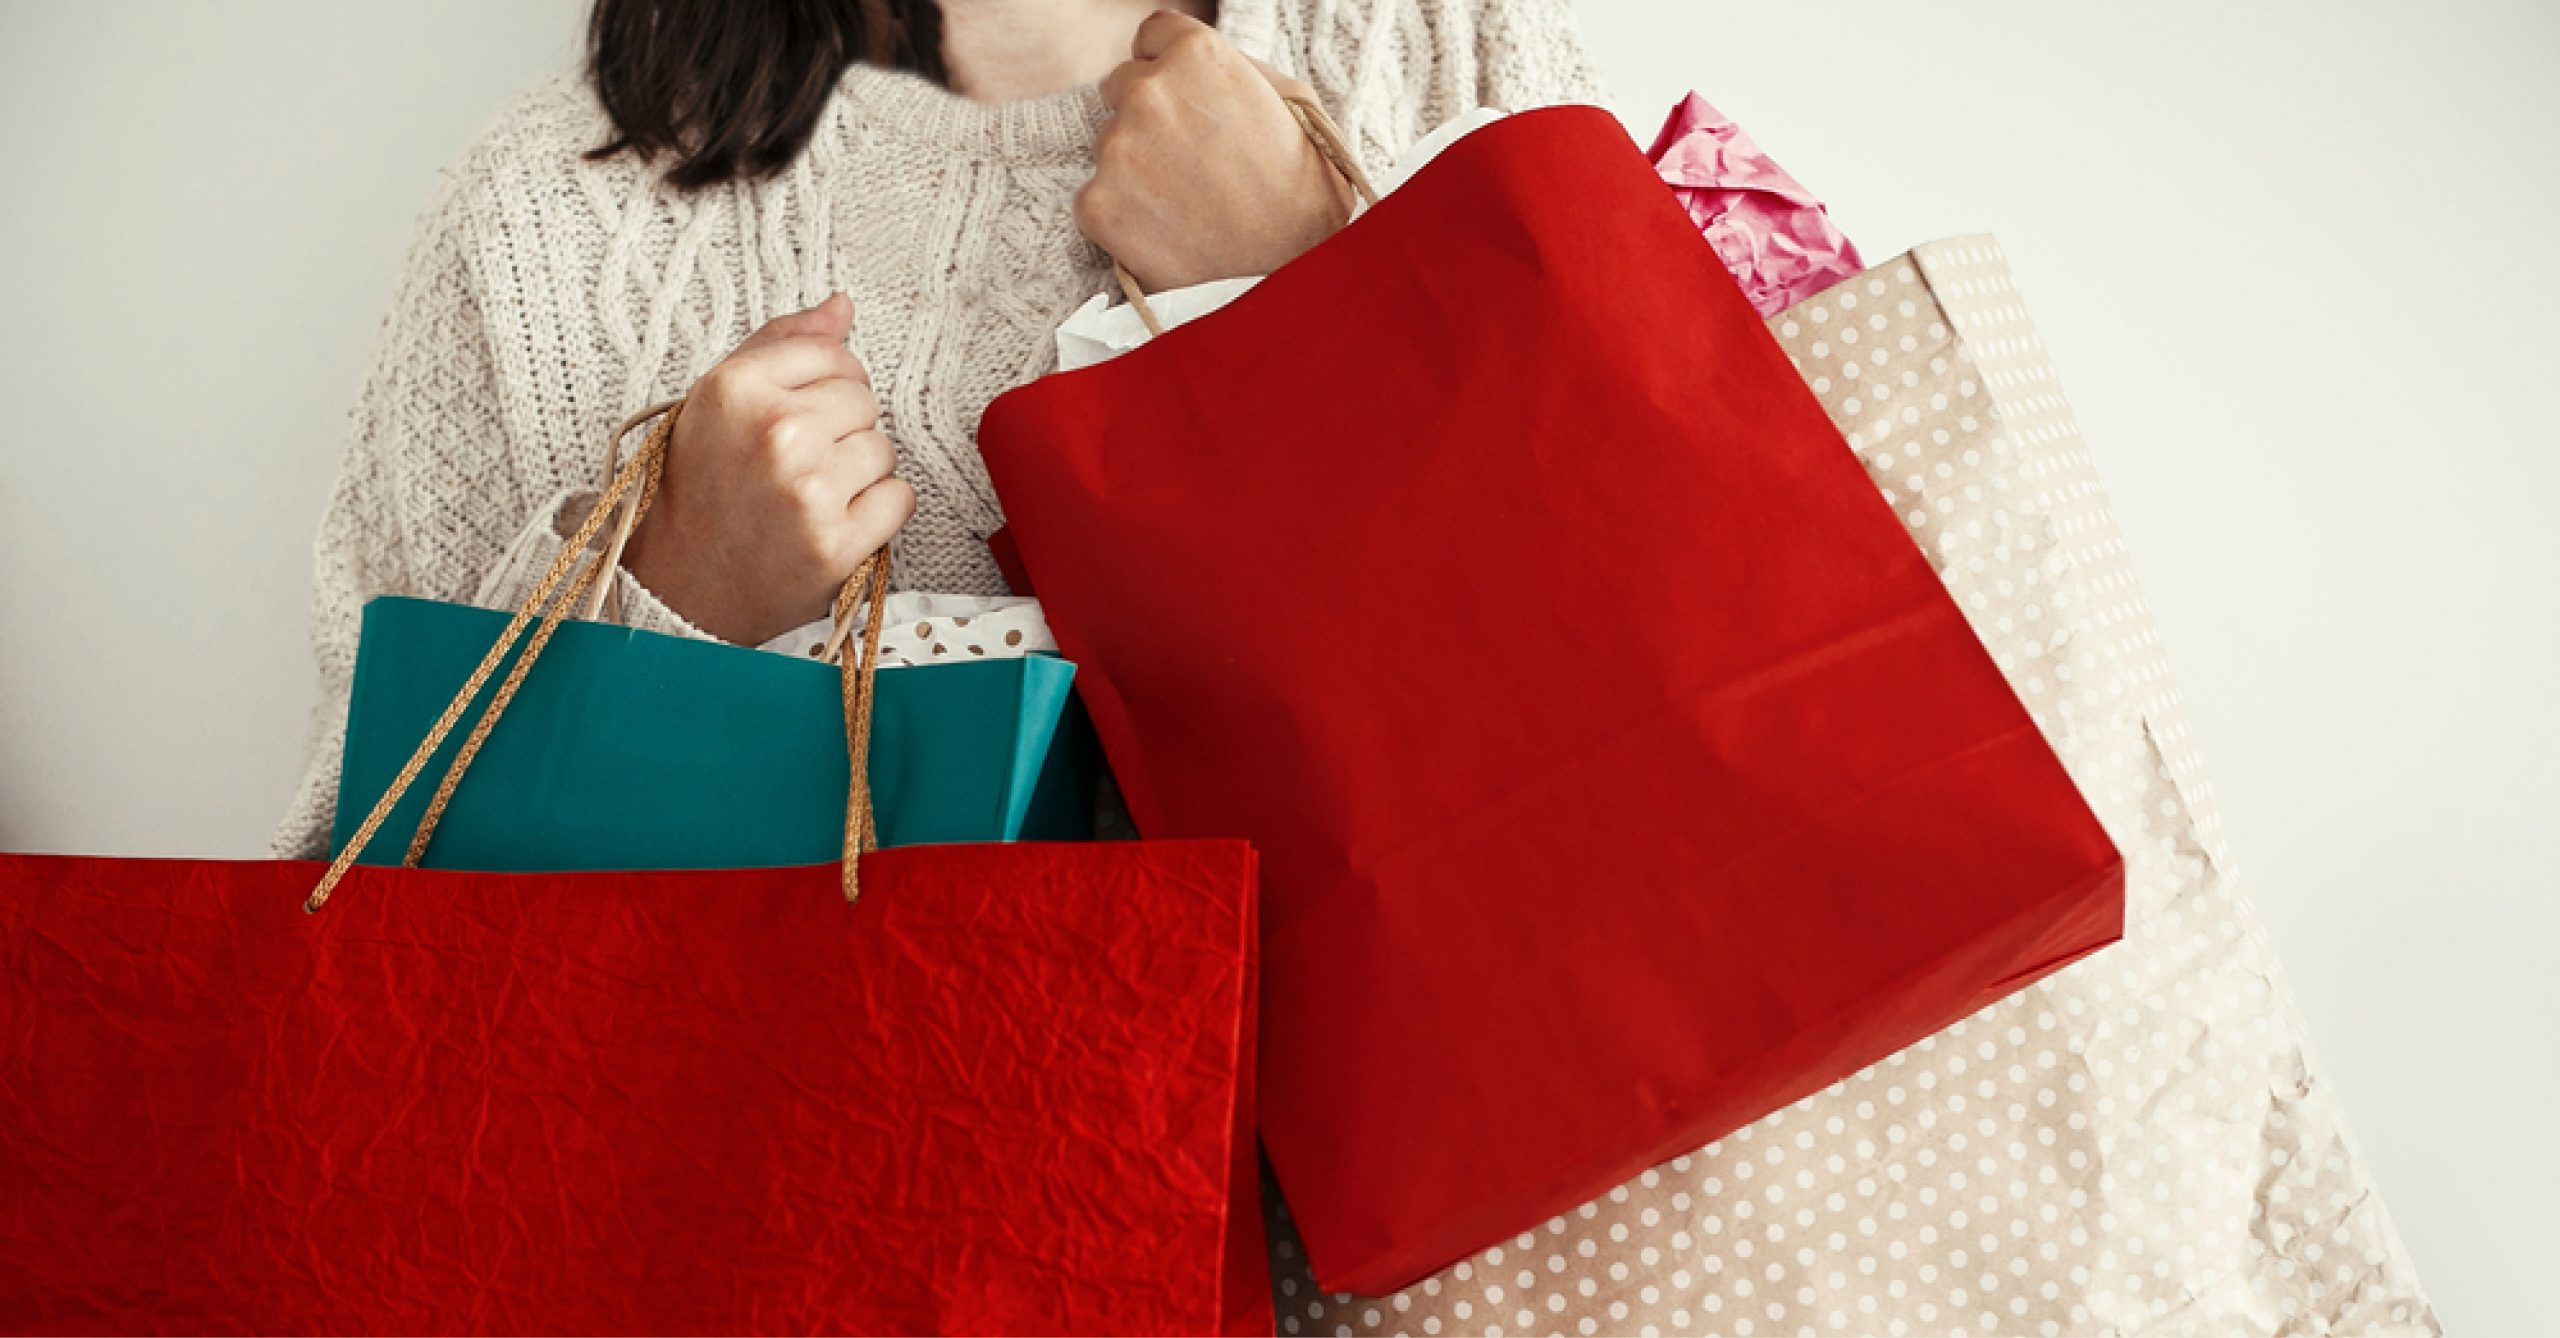 Making Your Store A Go-To Holiday Shopping Destination